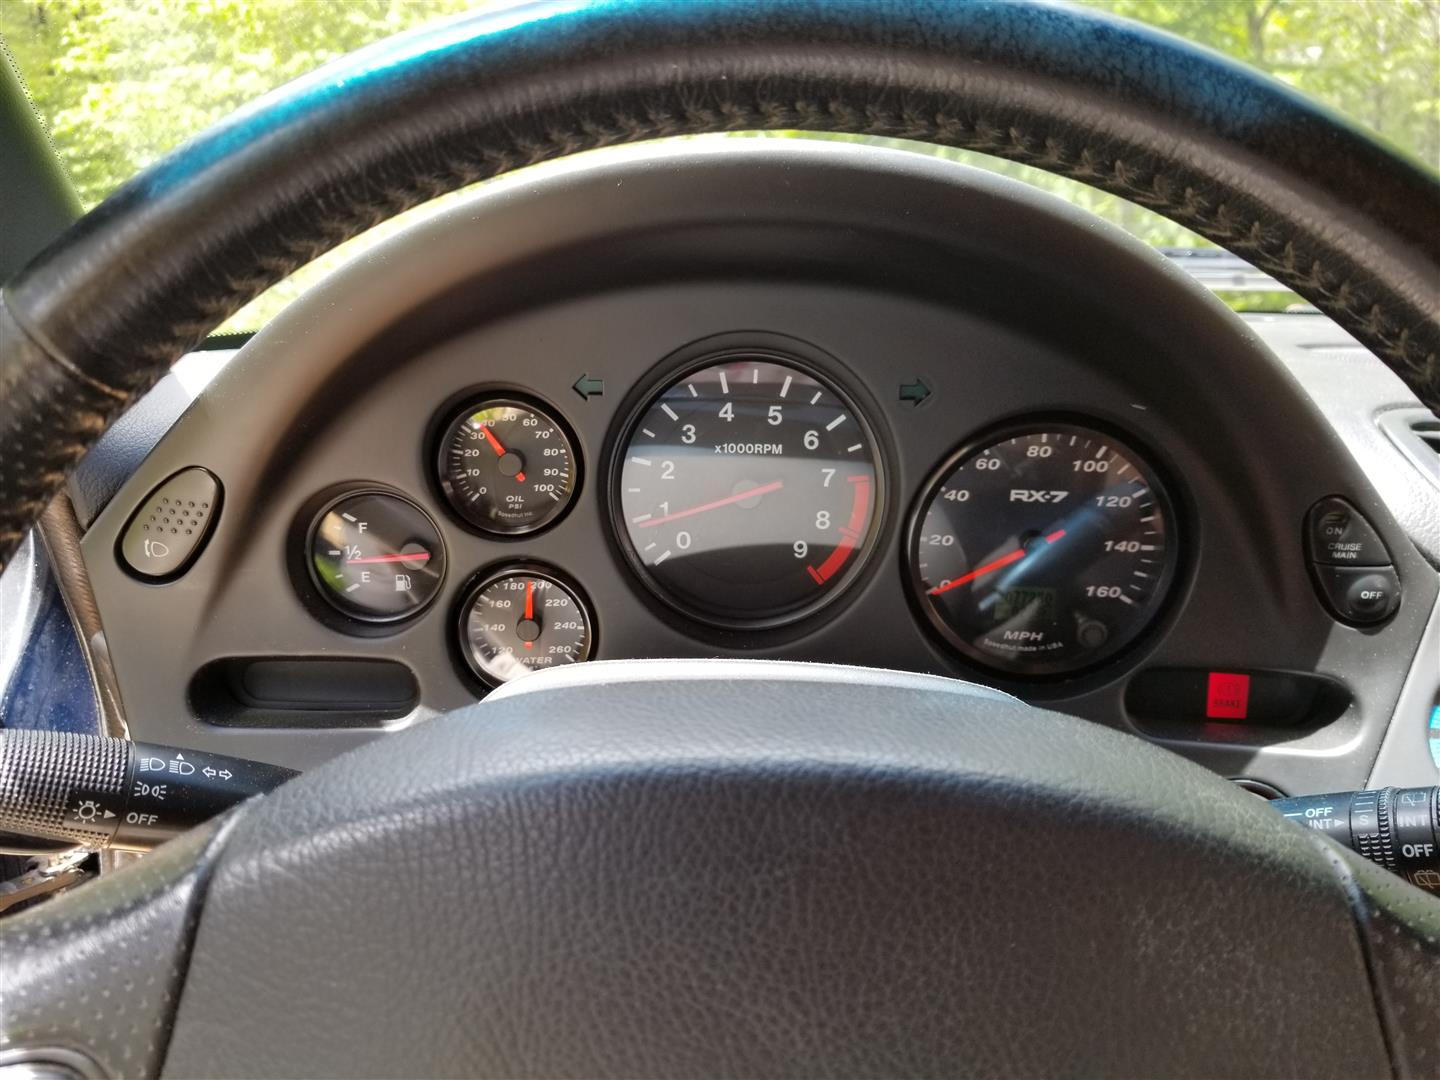 hight resolution of extremely simple fd tach odometer repair 20170527 120443 large jpg